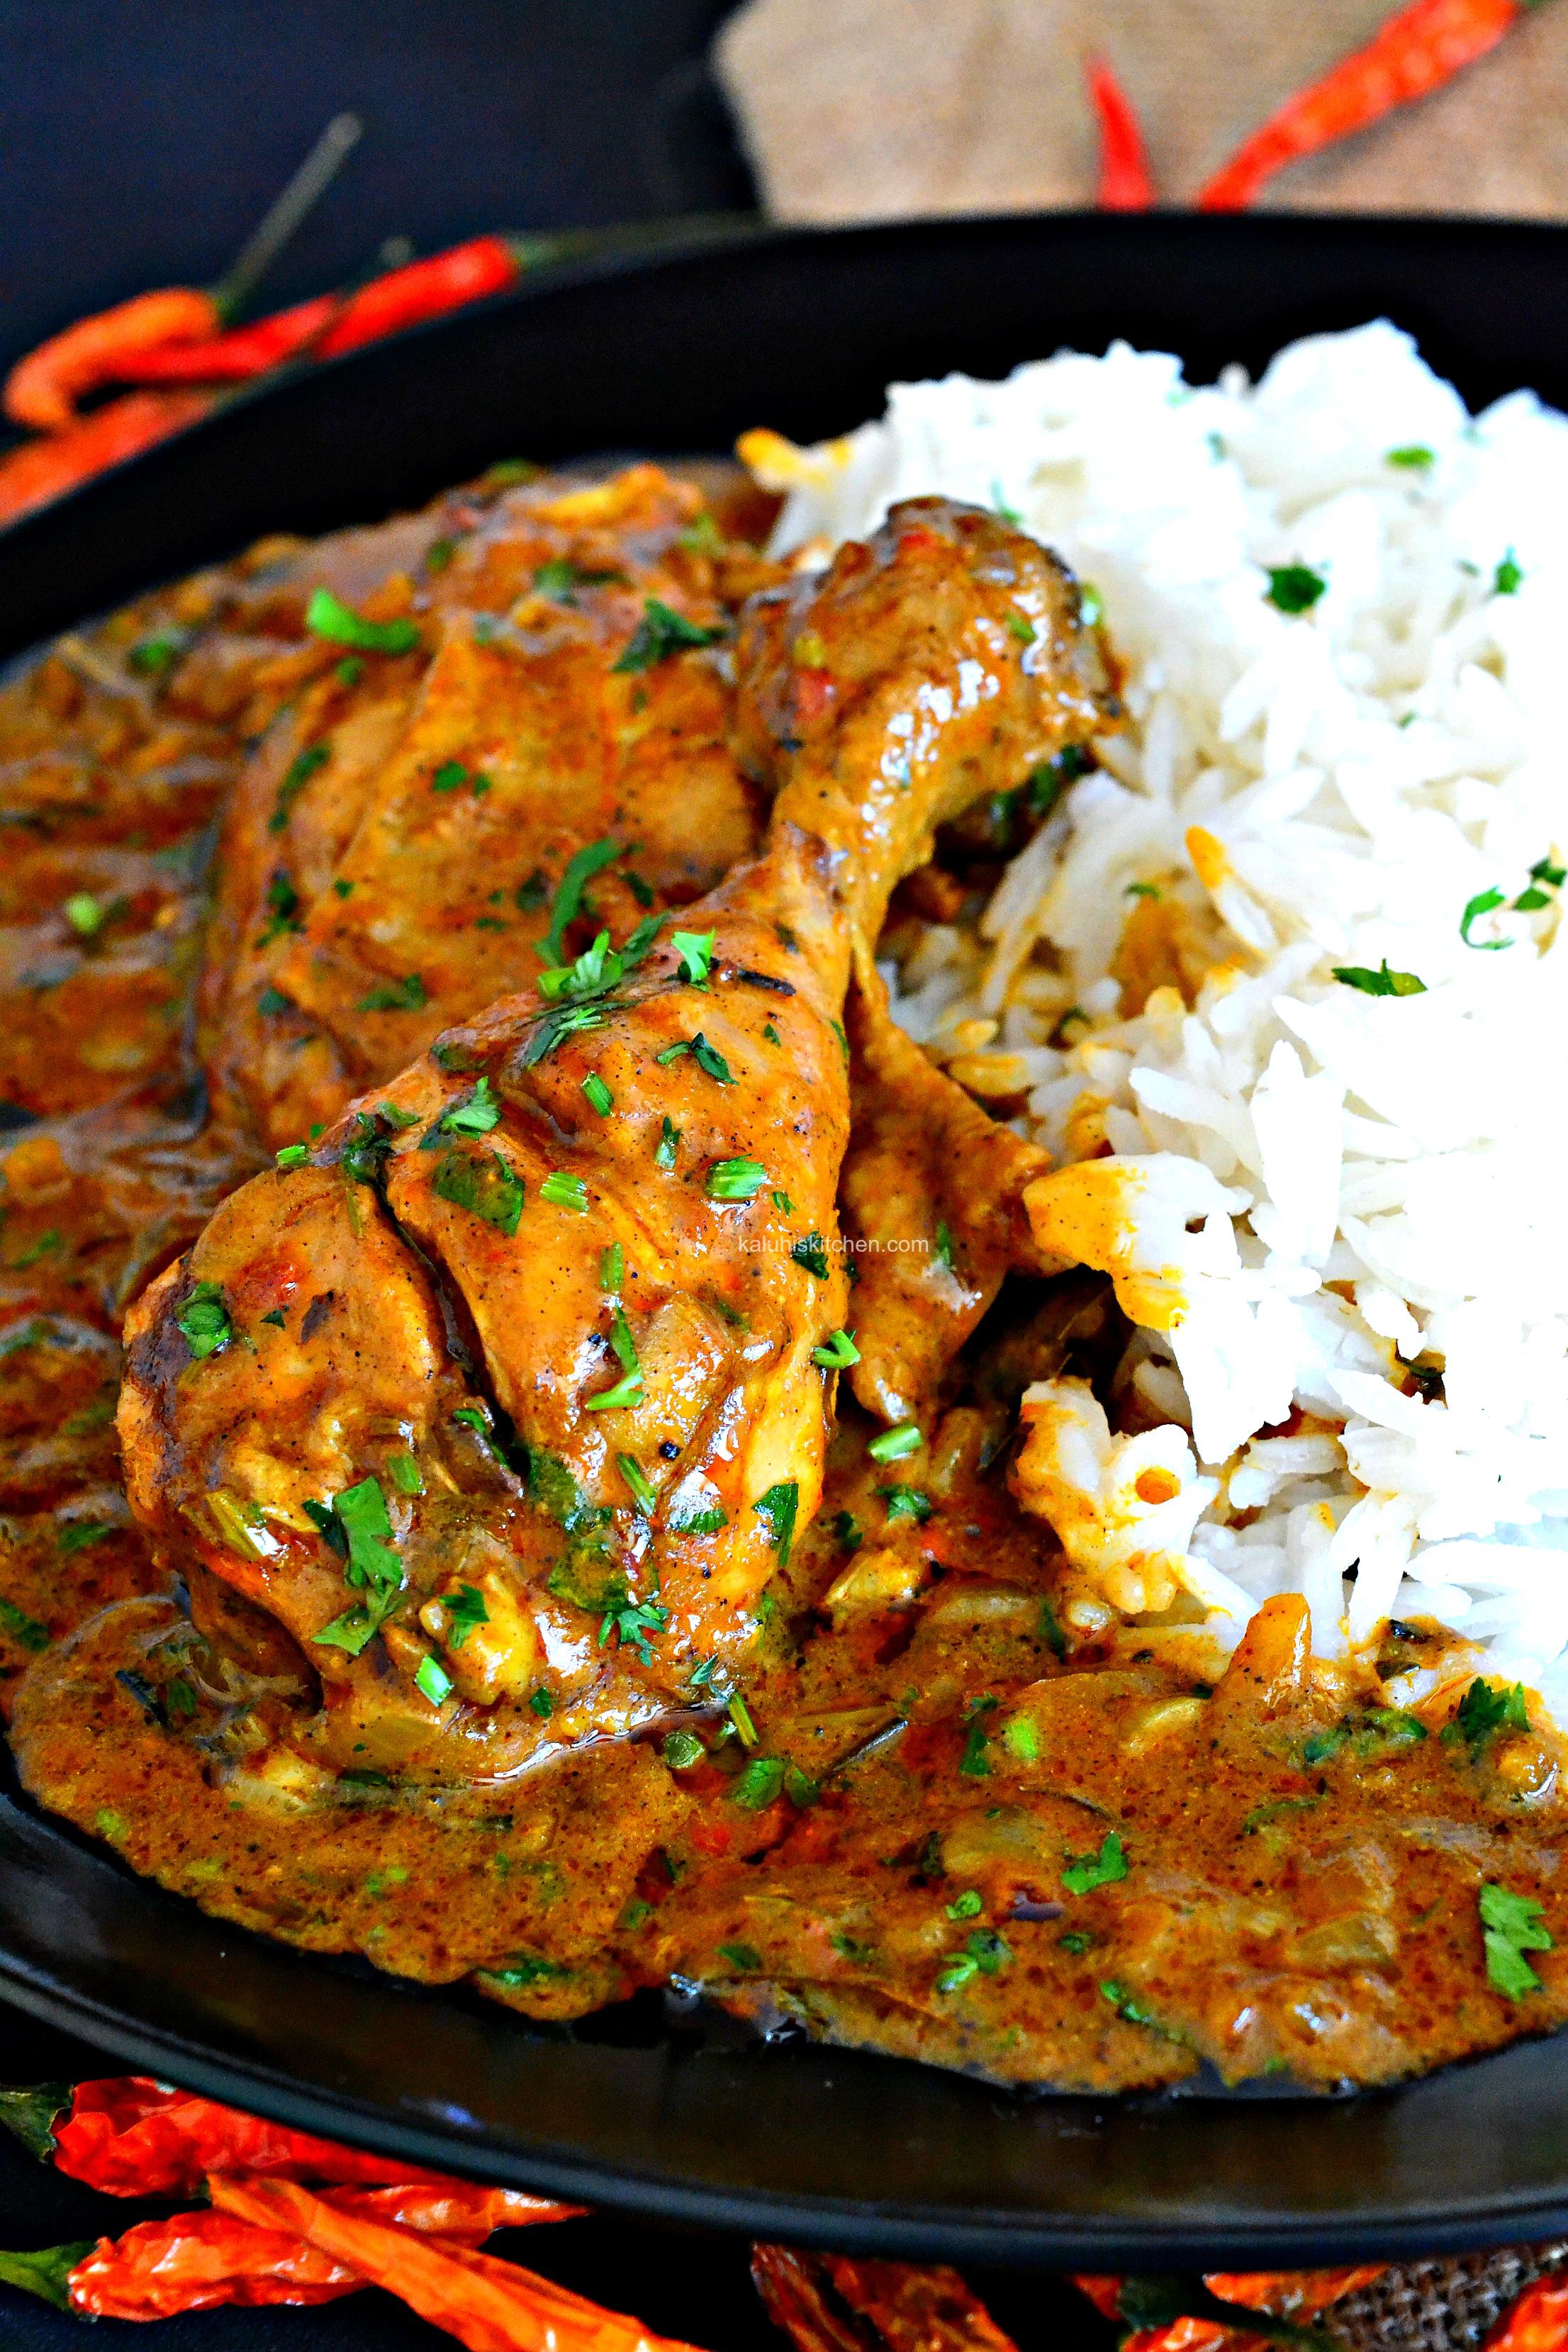 Chicken curry dont you just want to take a bite licks screen then eats device forumfinder Image collections